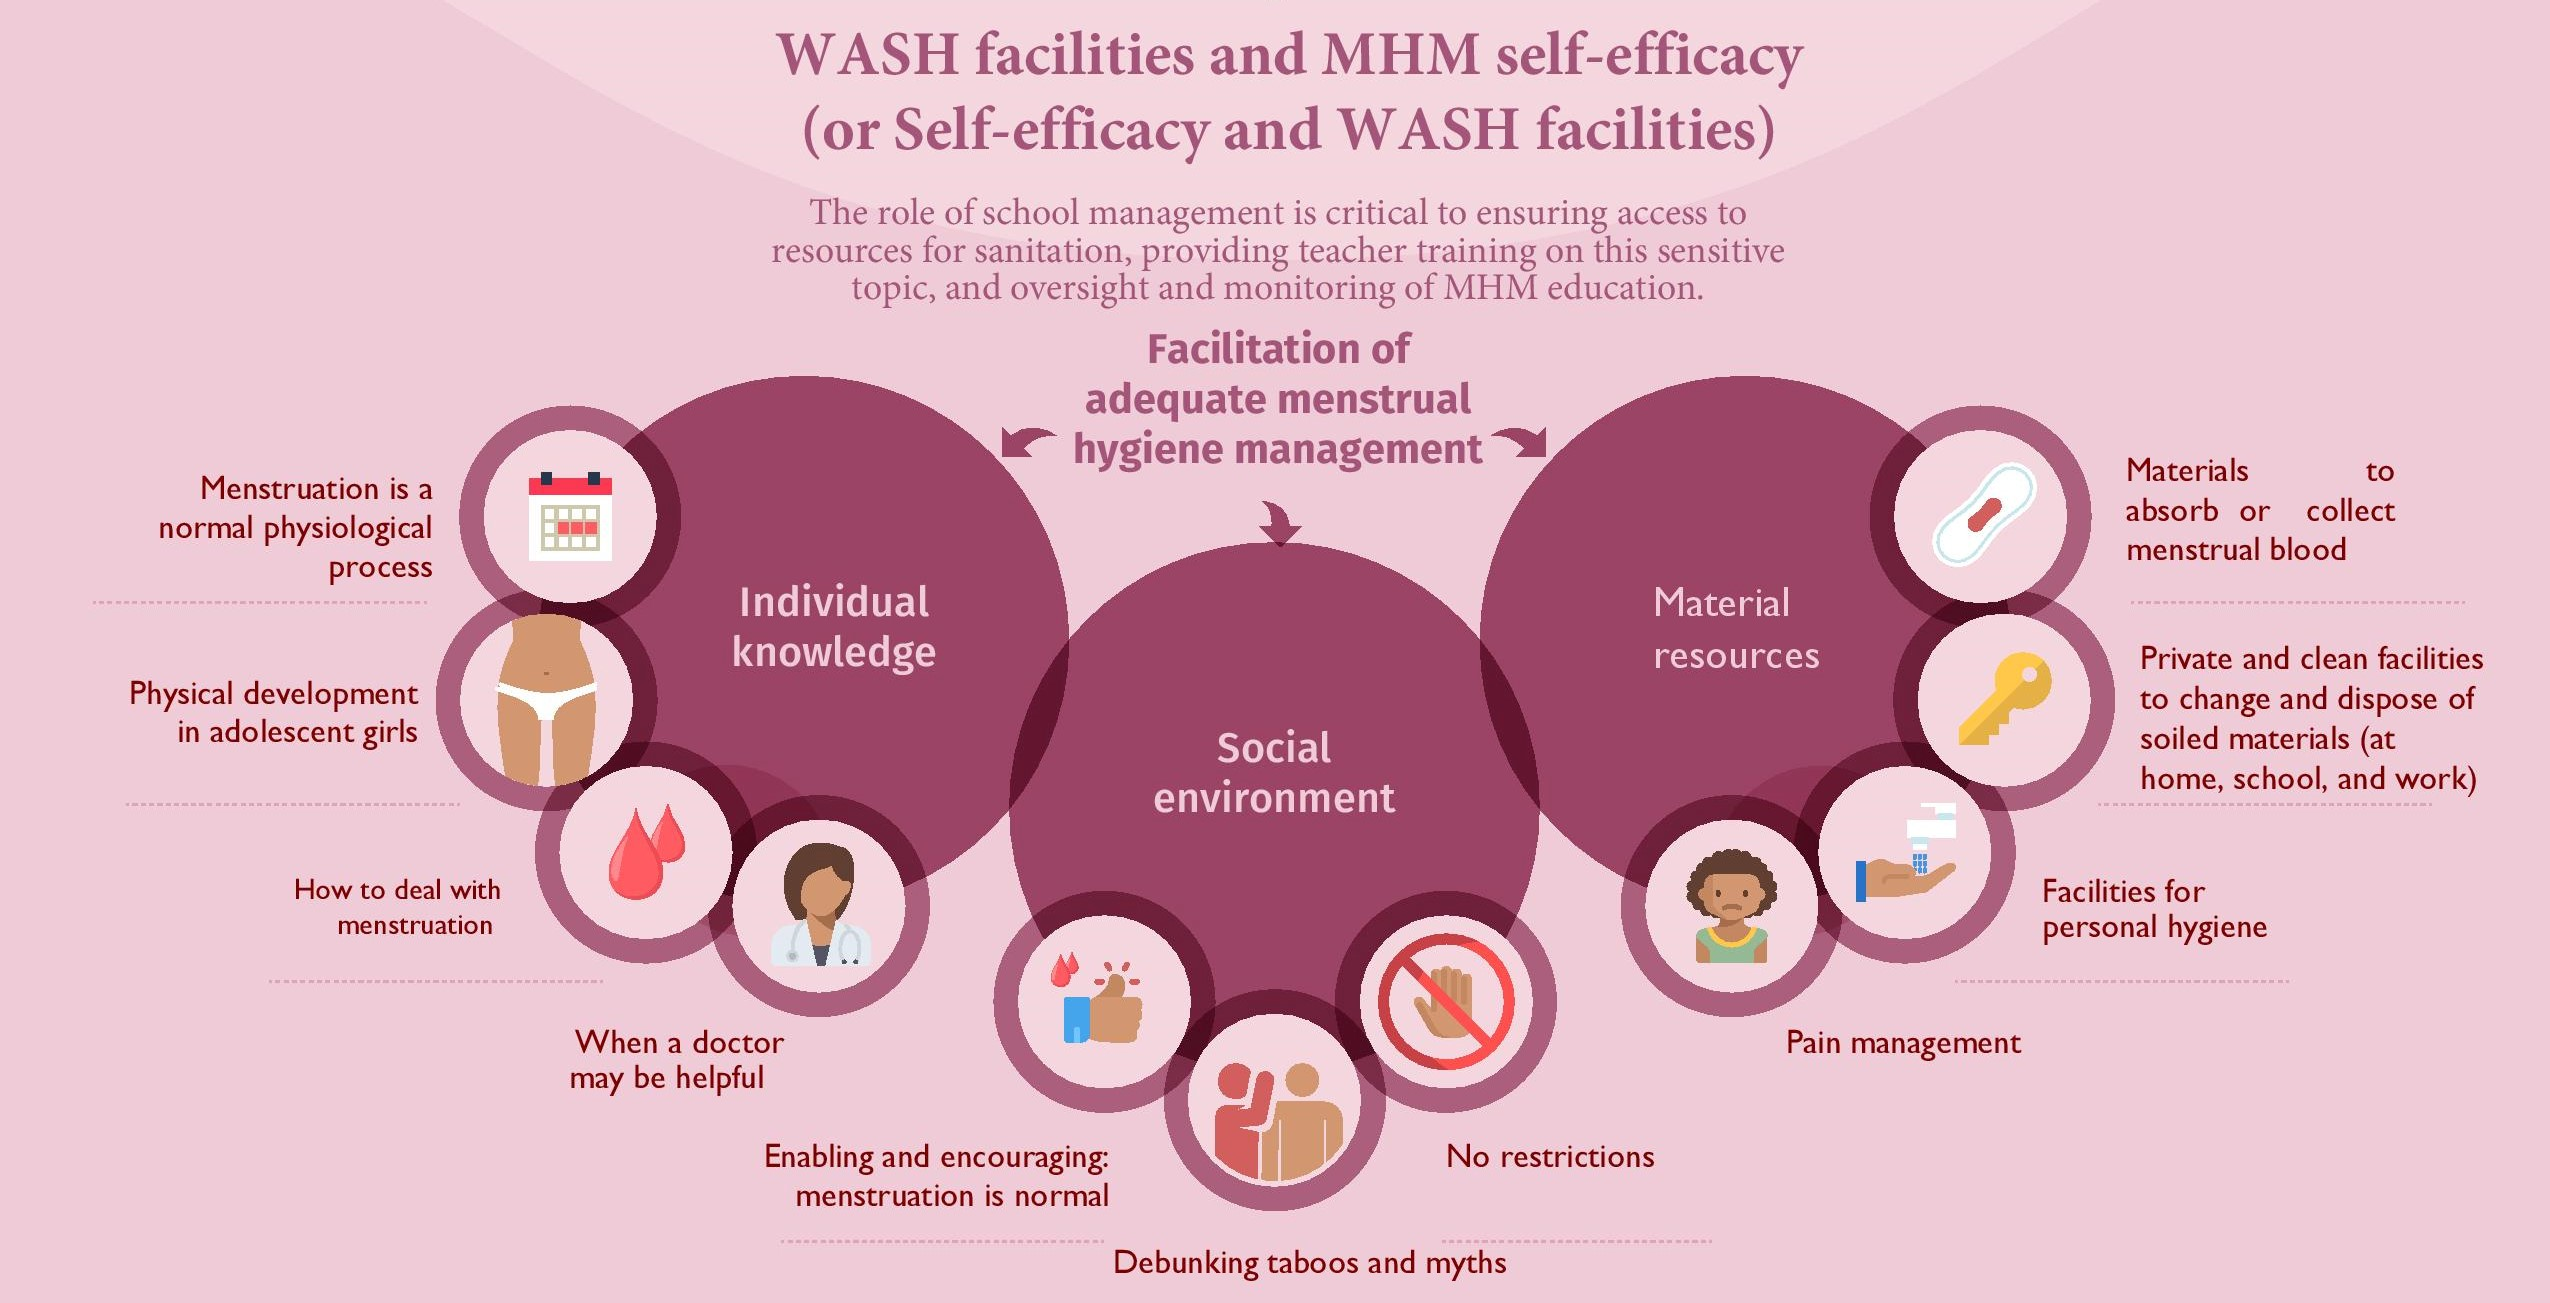 An institutional view on Menstrual Hygiene Management